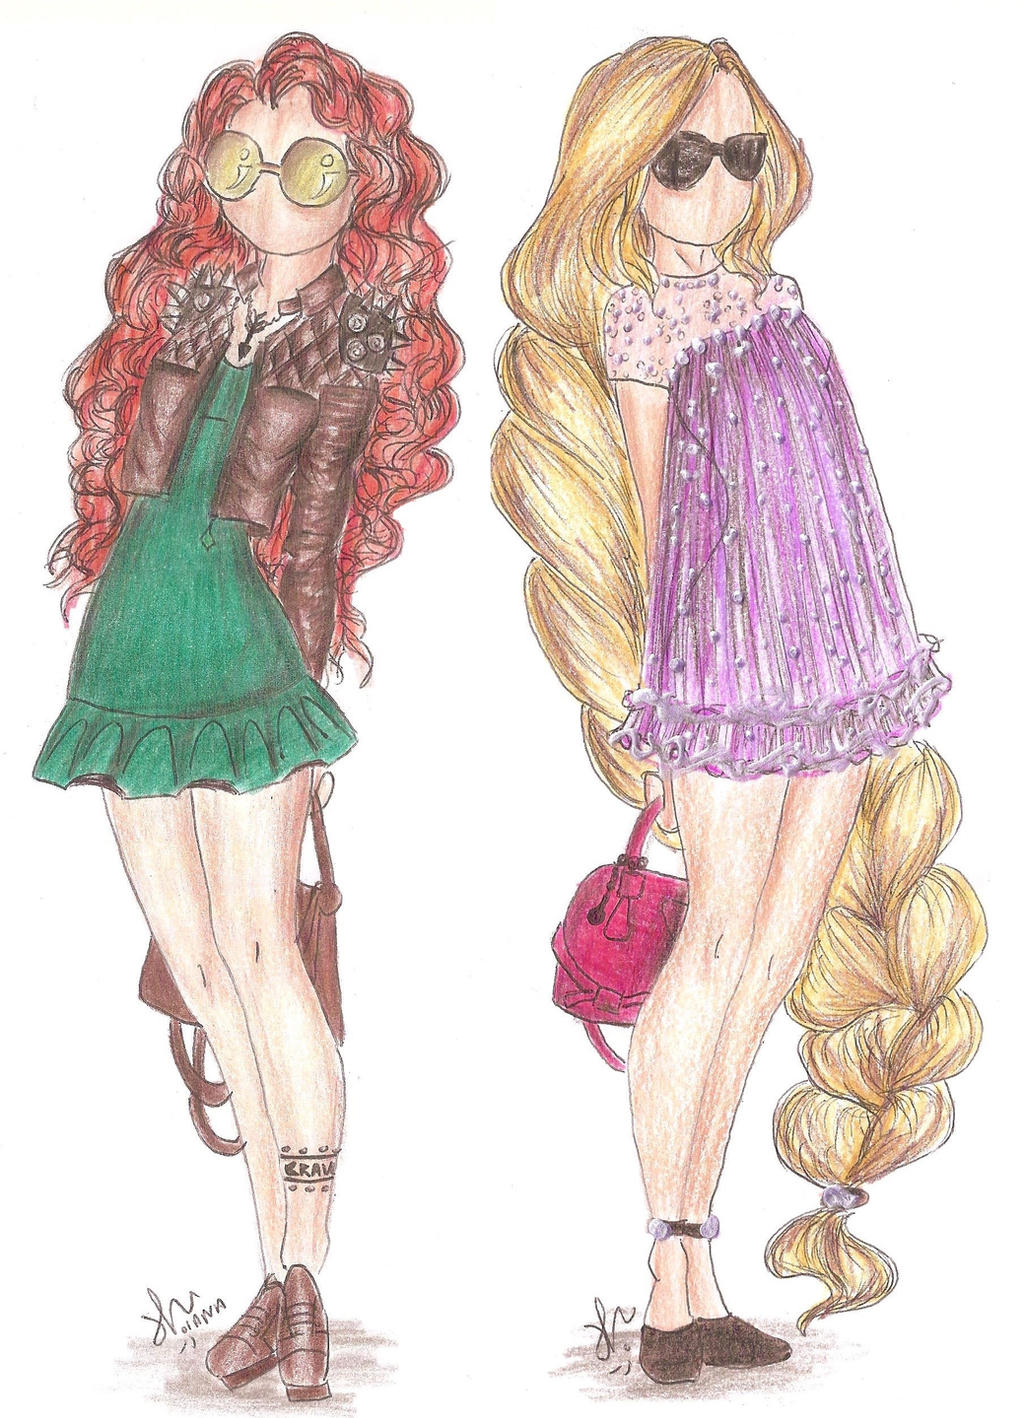 Disney Princess Fashion Merida And Rapunzel By VianaDrawings On